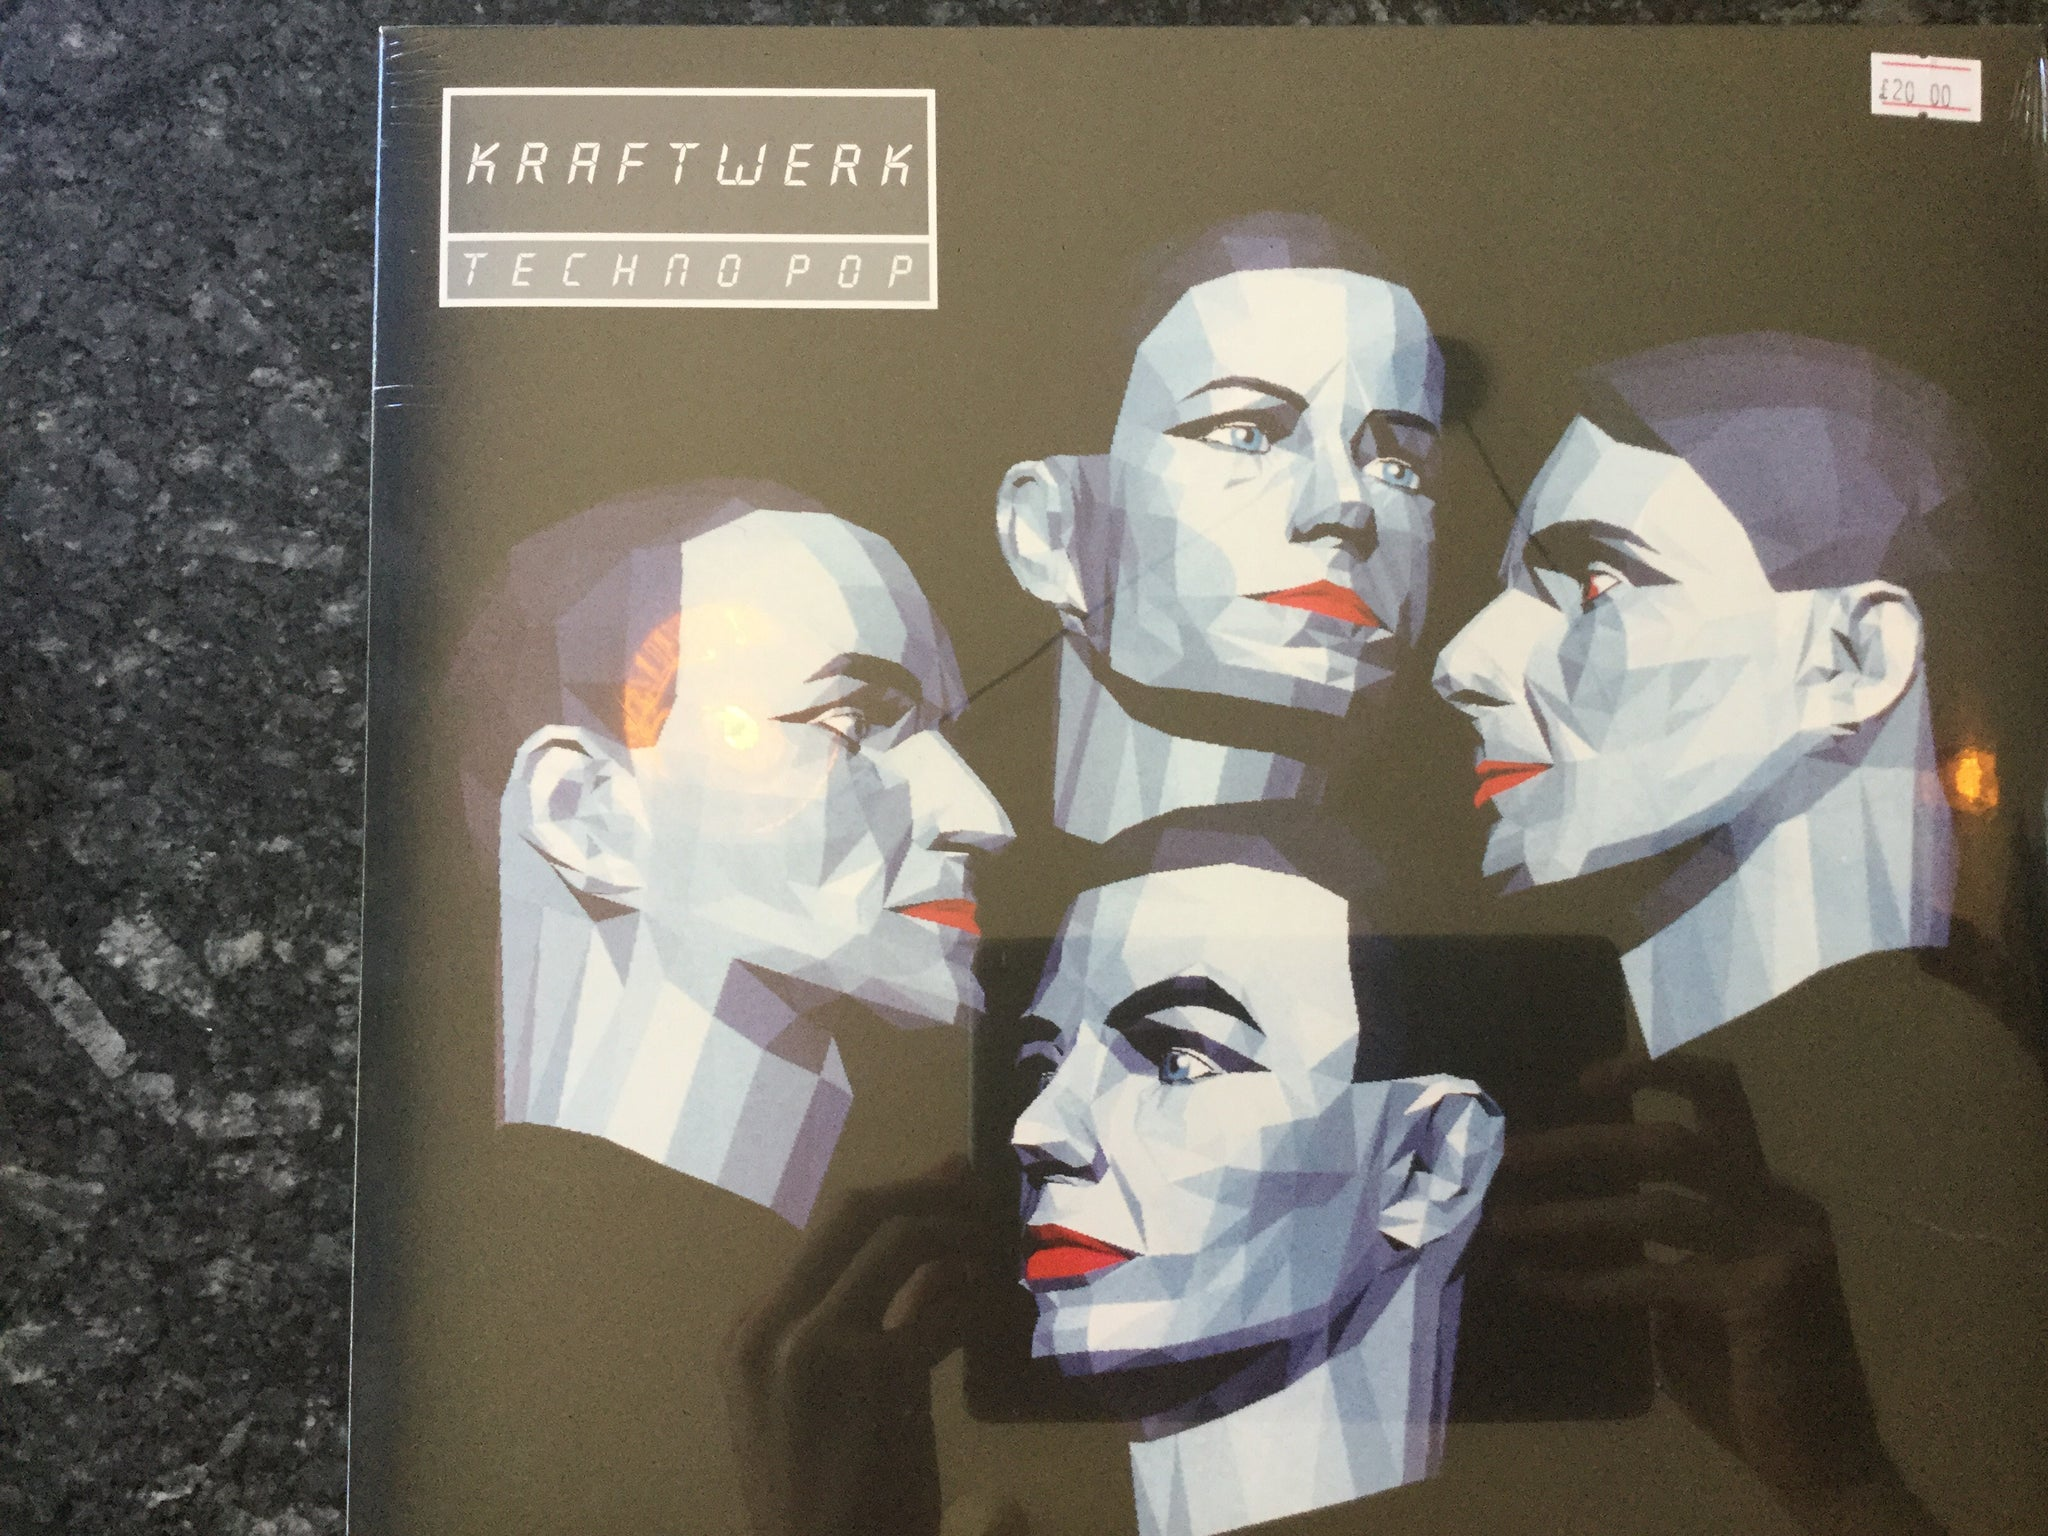 Kraftwerk- Techno Pop